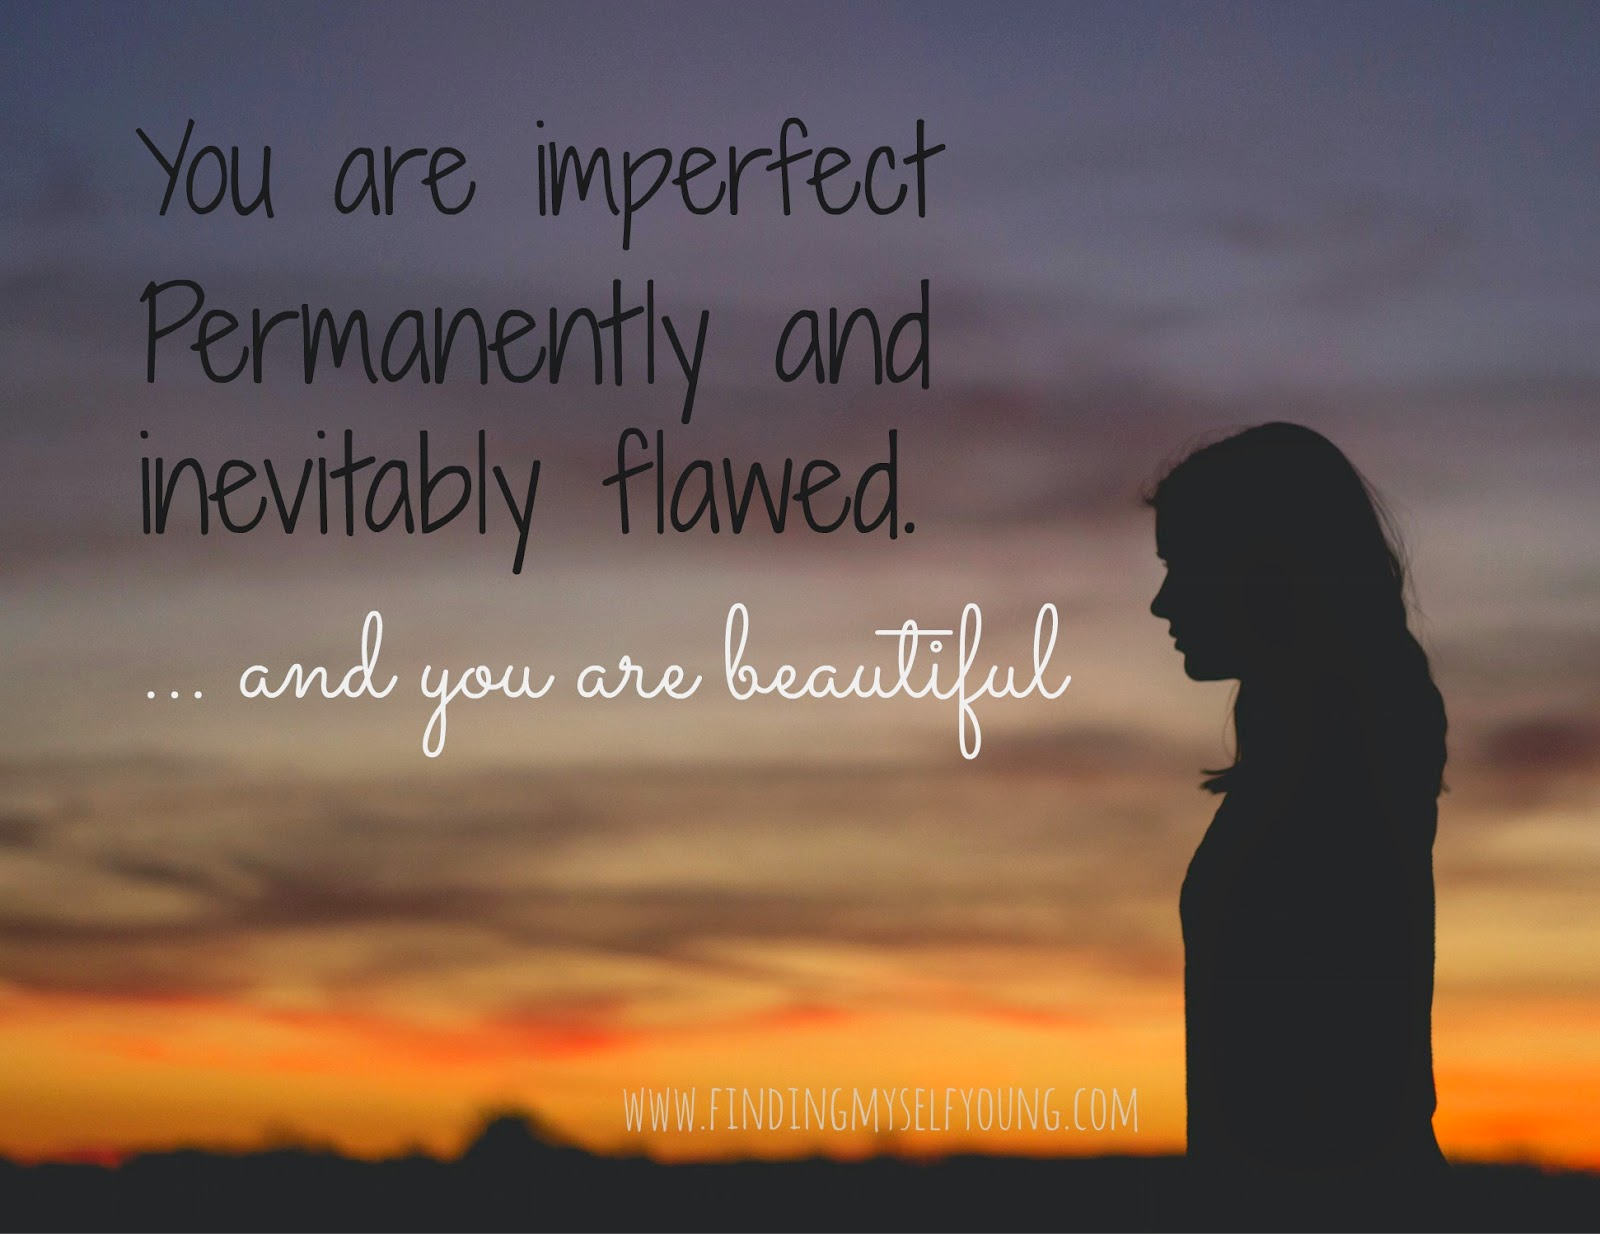 Quote - You are imperfect. Permanently and inevitably flawed... and you are beautiful